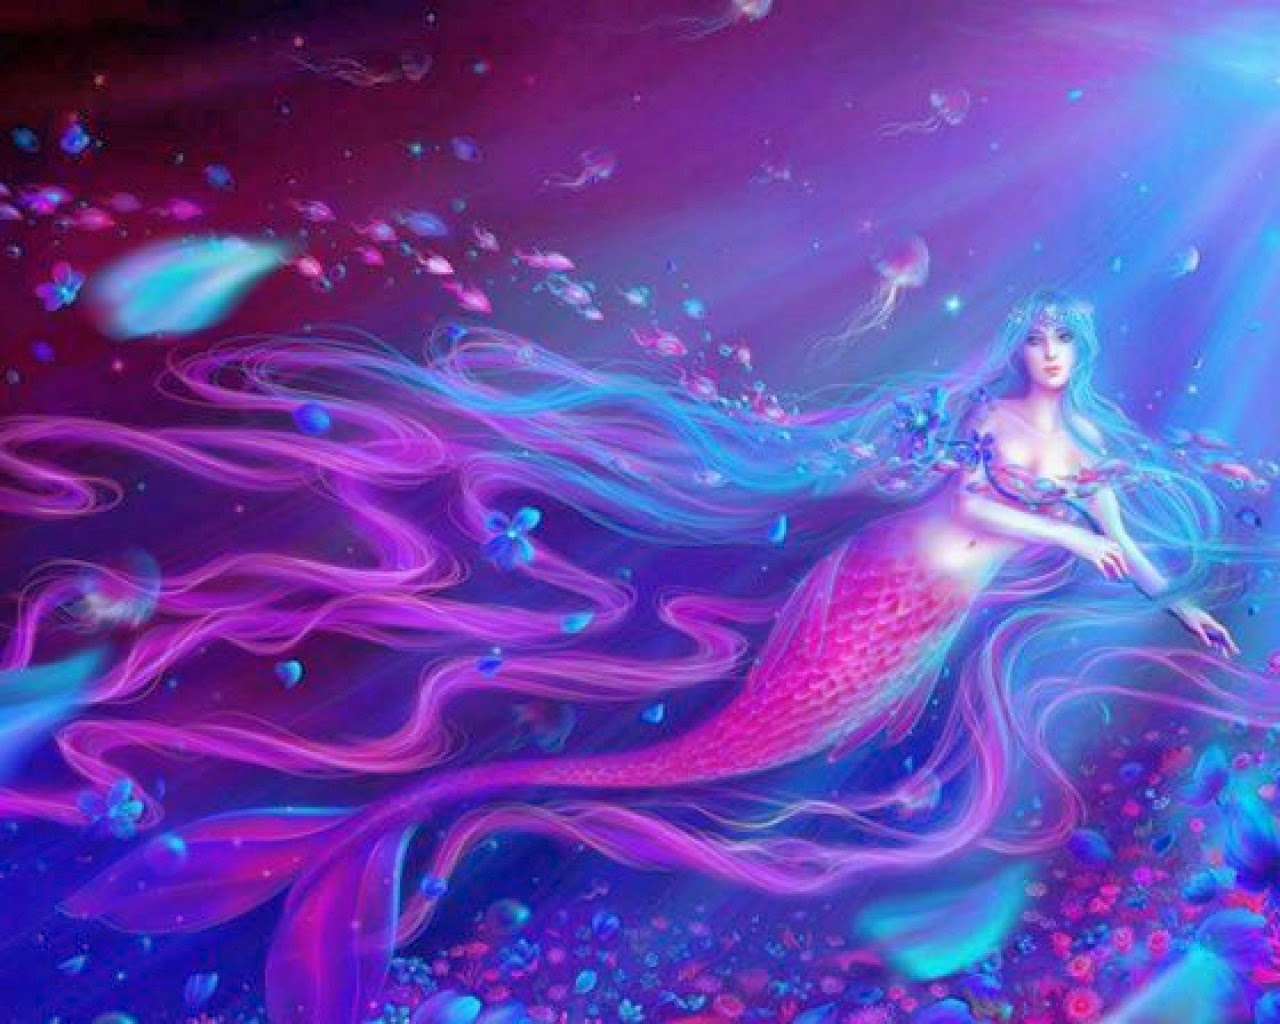 most-beautiful-mermaids-pictures-for-desktop-and-mobile.jpg